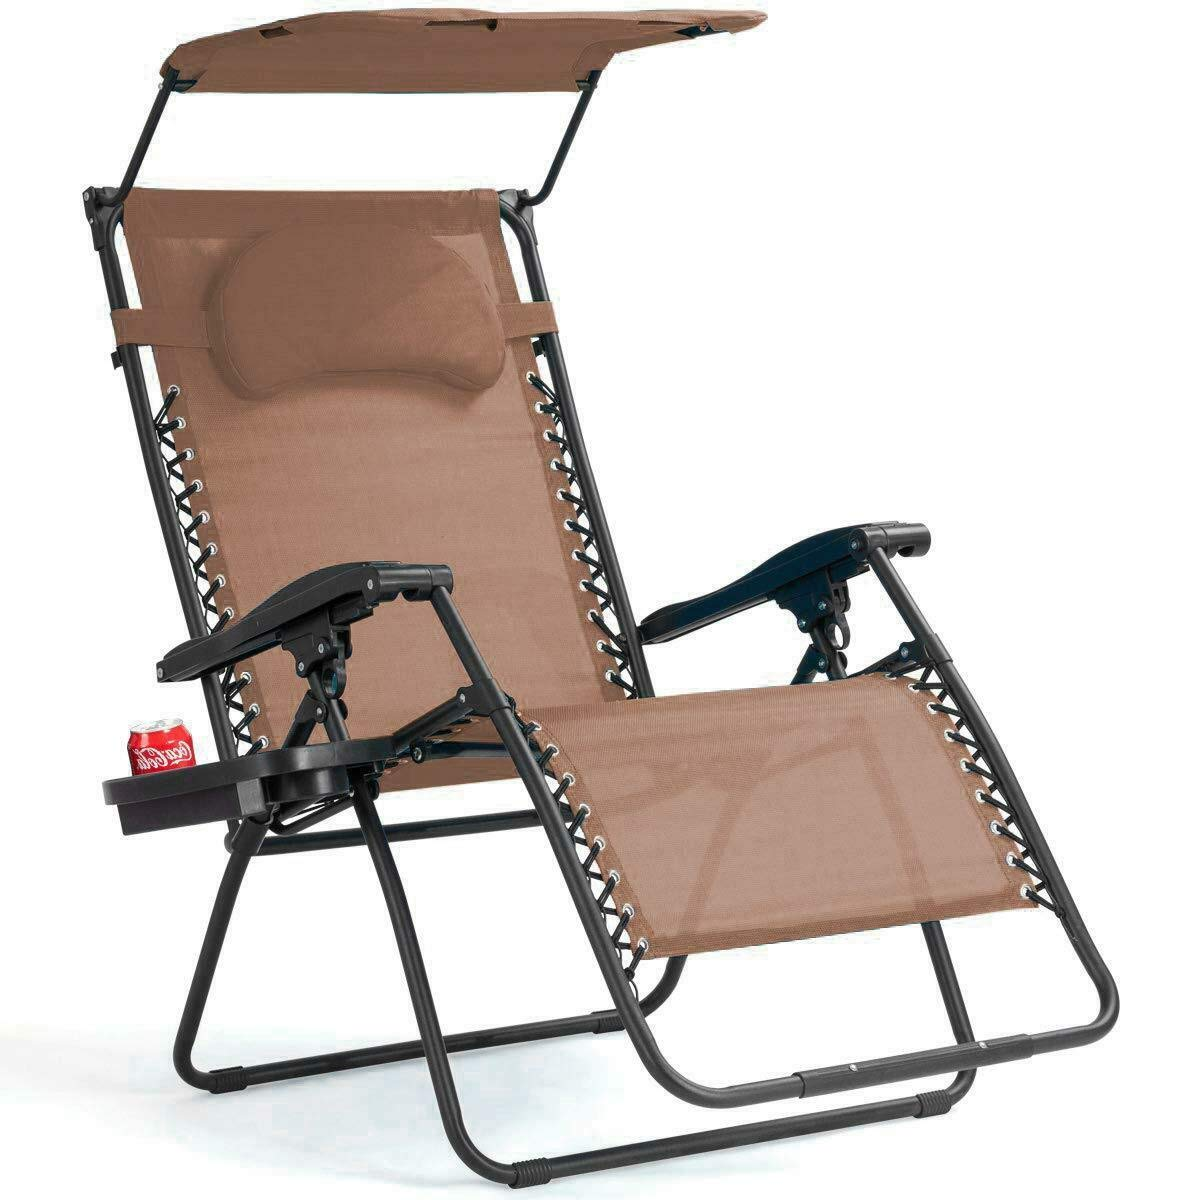 Excellent Adjustable Folding Shade Canopy Relax Poolside Beach Lounge Machost Co Dining Chair Design Ideas Machostcouk